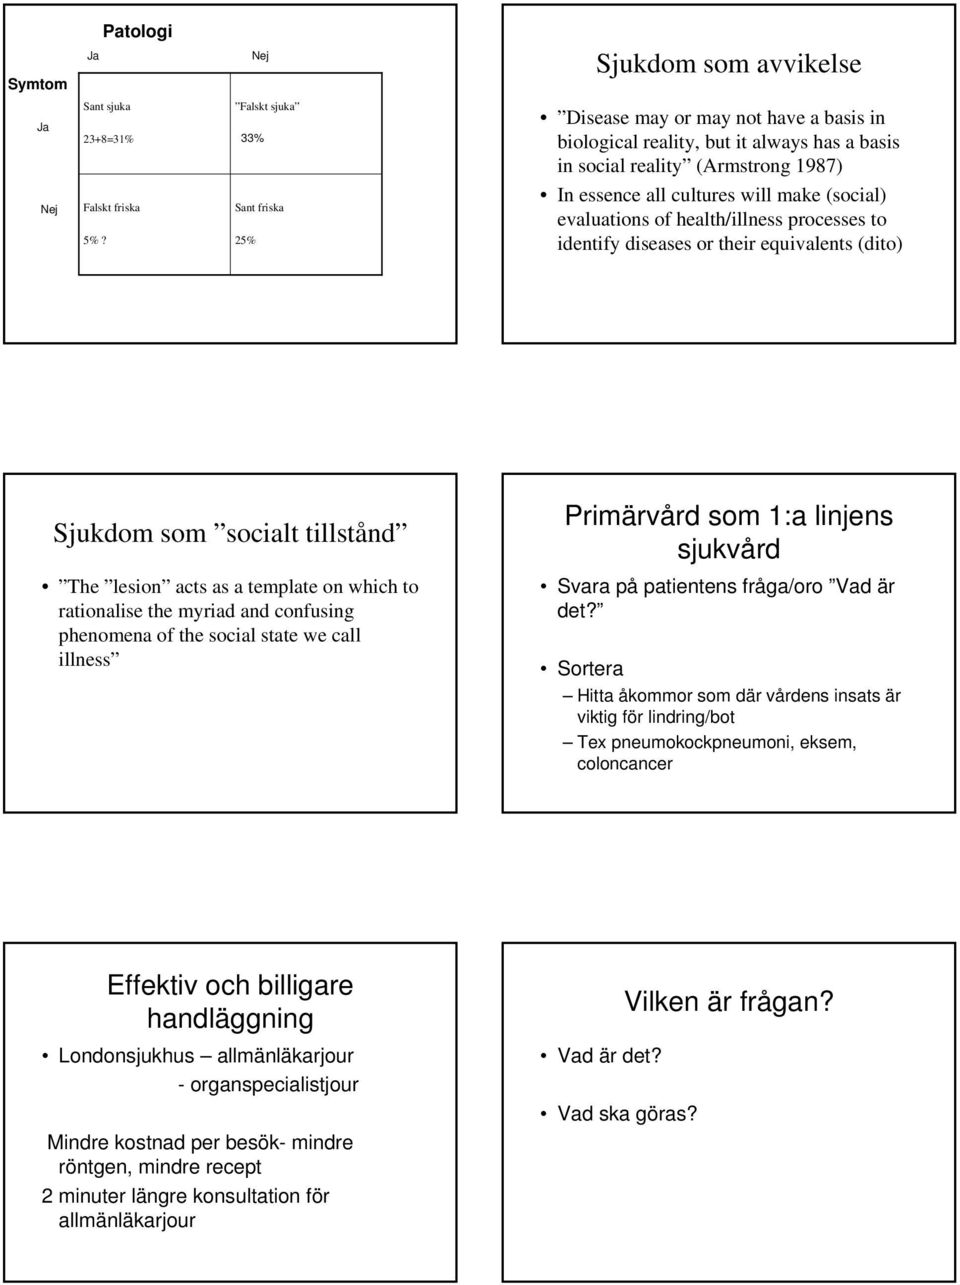 evaluations of health/illness processes to identify diseases or their equivalents (dito) Sjukdom som socialt tillstånd The lesion acts as a template on which to rationalise the myriad and confusing